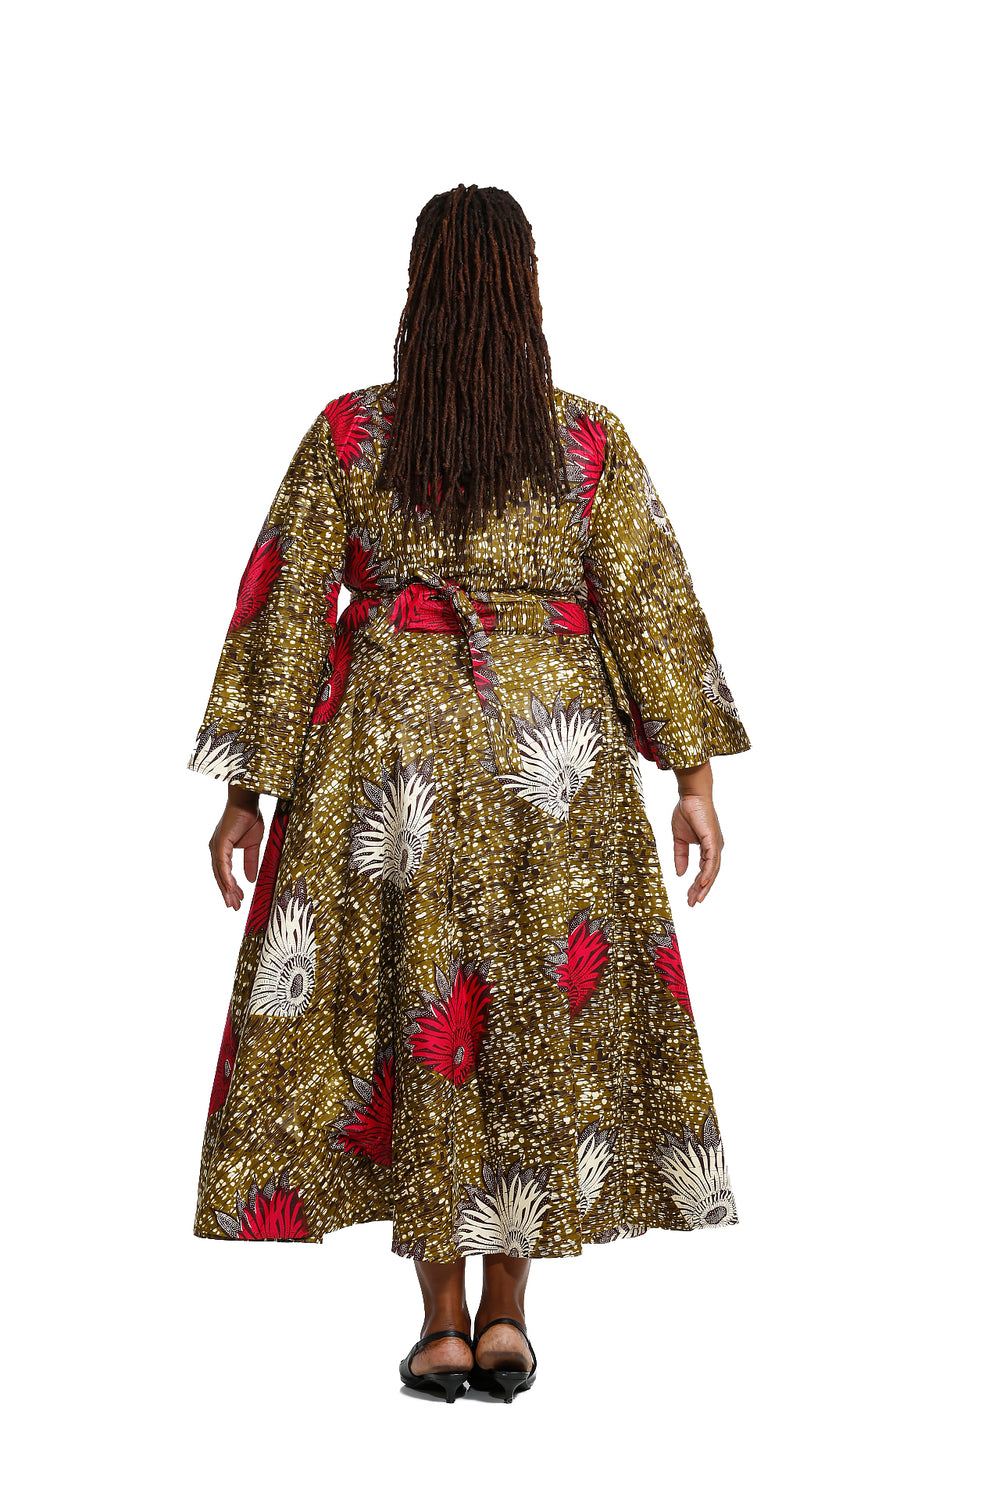 Sundaze African Print Wrap Around Dress - Wrap Dresses Nolafrique African Print Dress